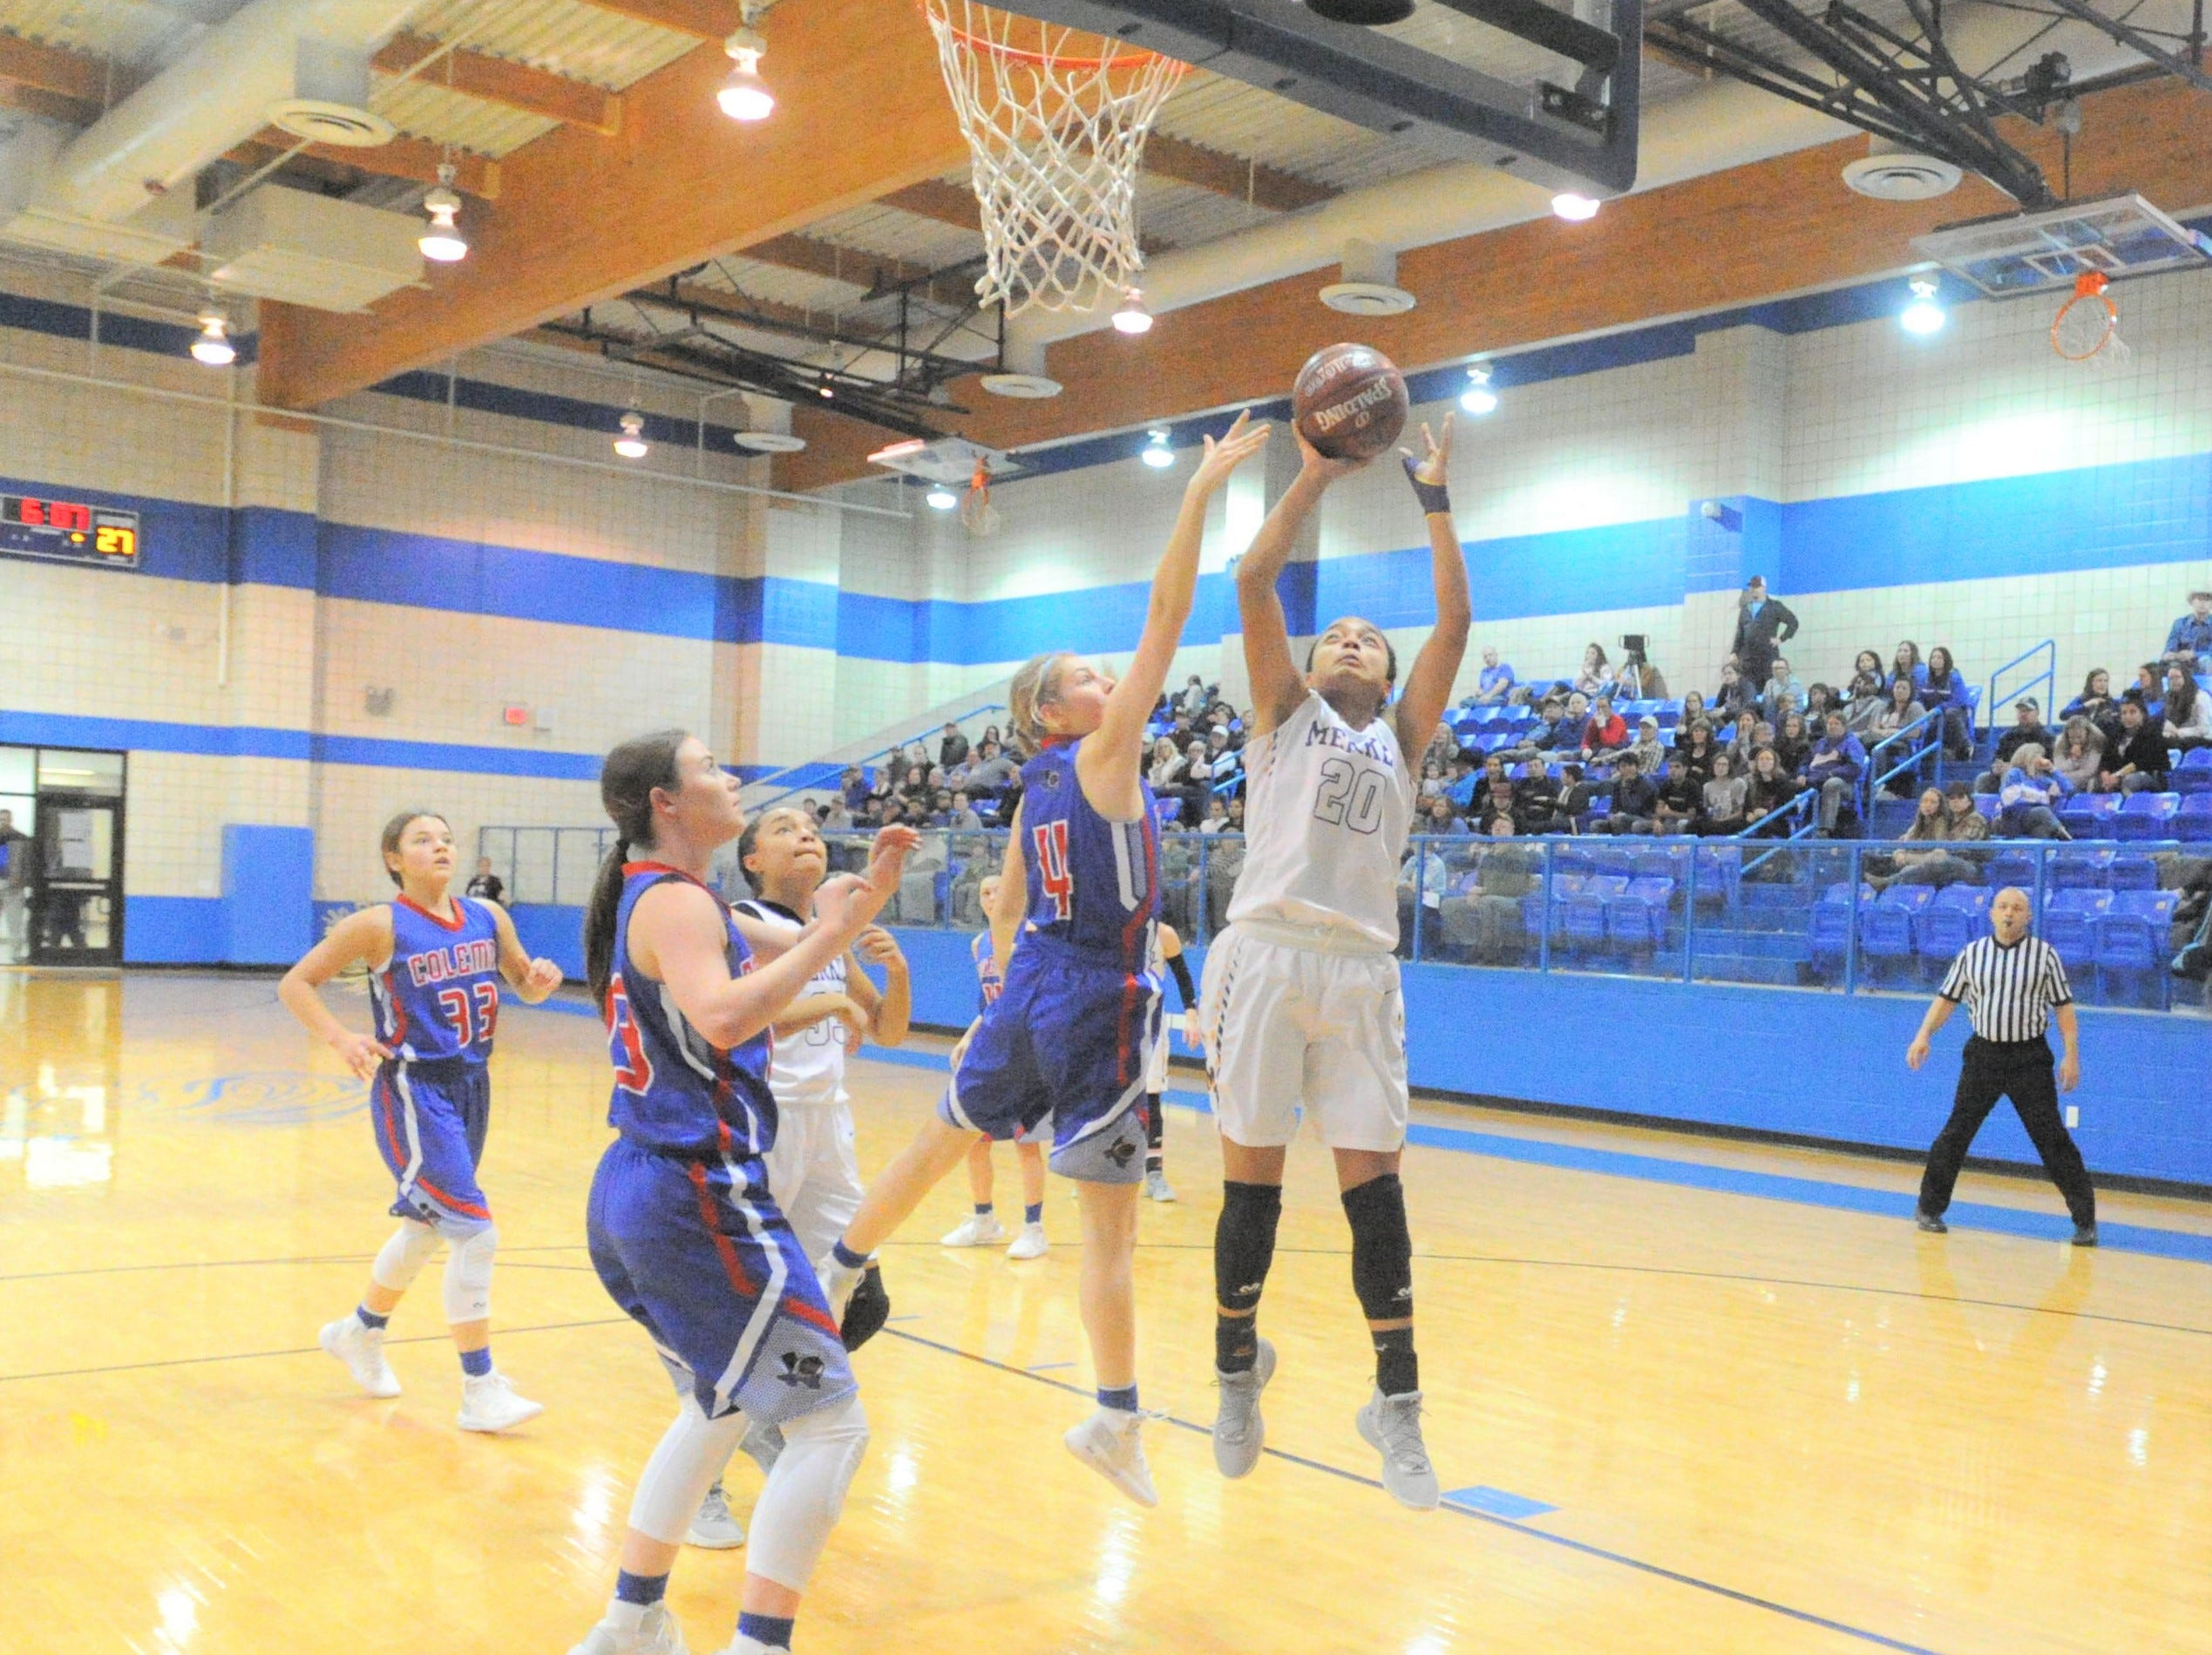 Merkel sophomore Alyssa White (20) scores in the paint in front of Coleman's Abbi Allen (4) in a bi-district playoff at Winters High School on Monday, Feb. 11, 2019.